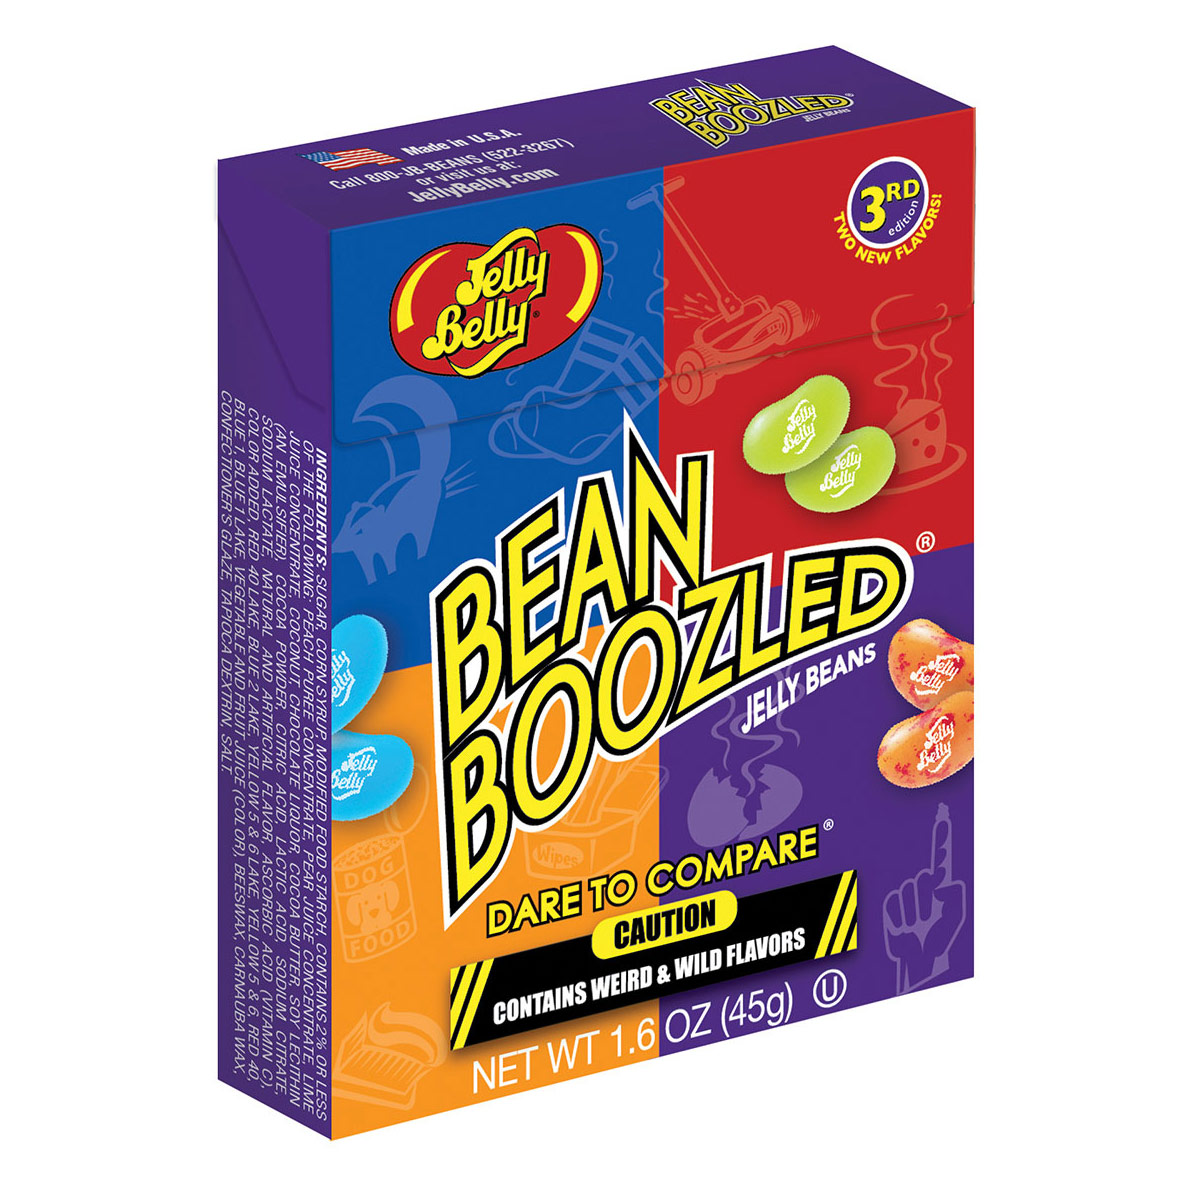 BeanBoozled Jelly Beans - 1.6 oz box